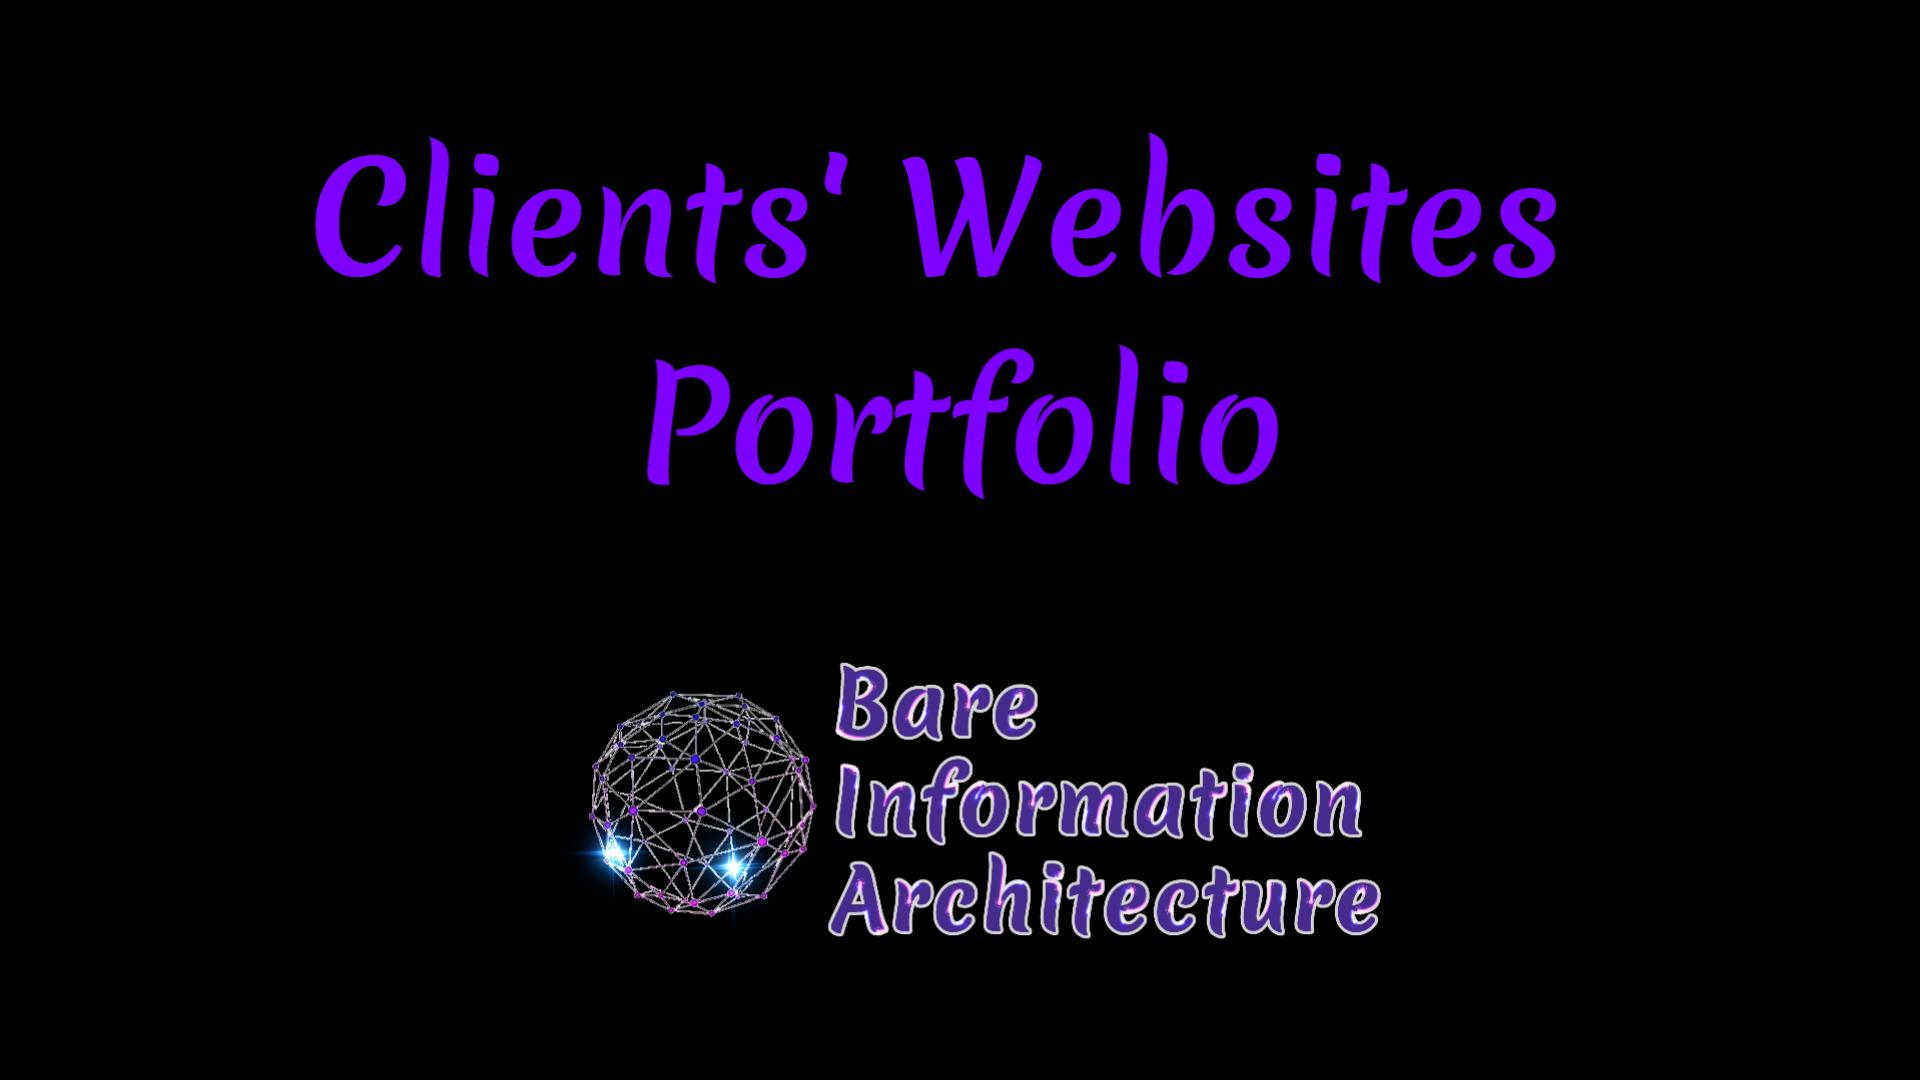 Clients' Websites Portfolio